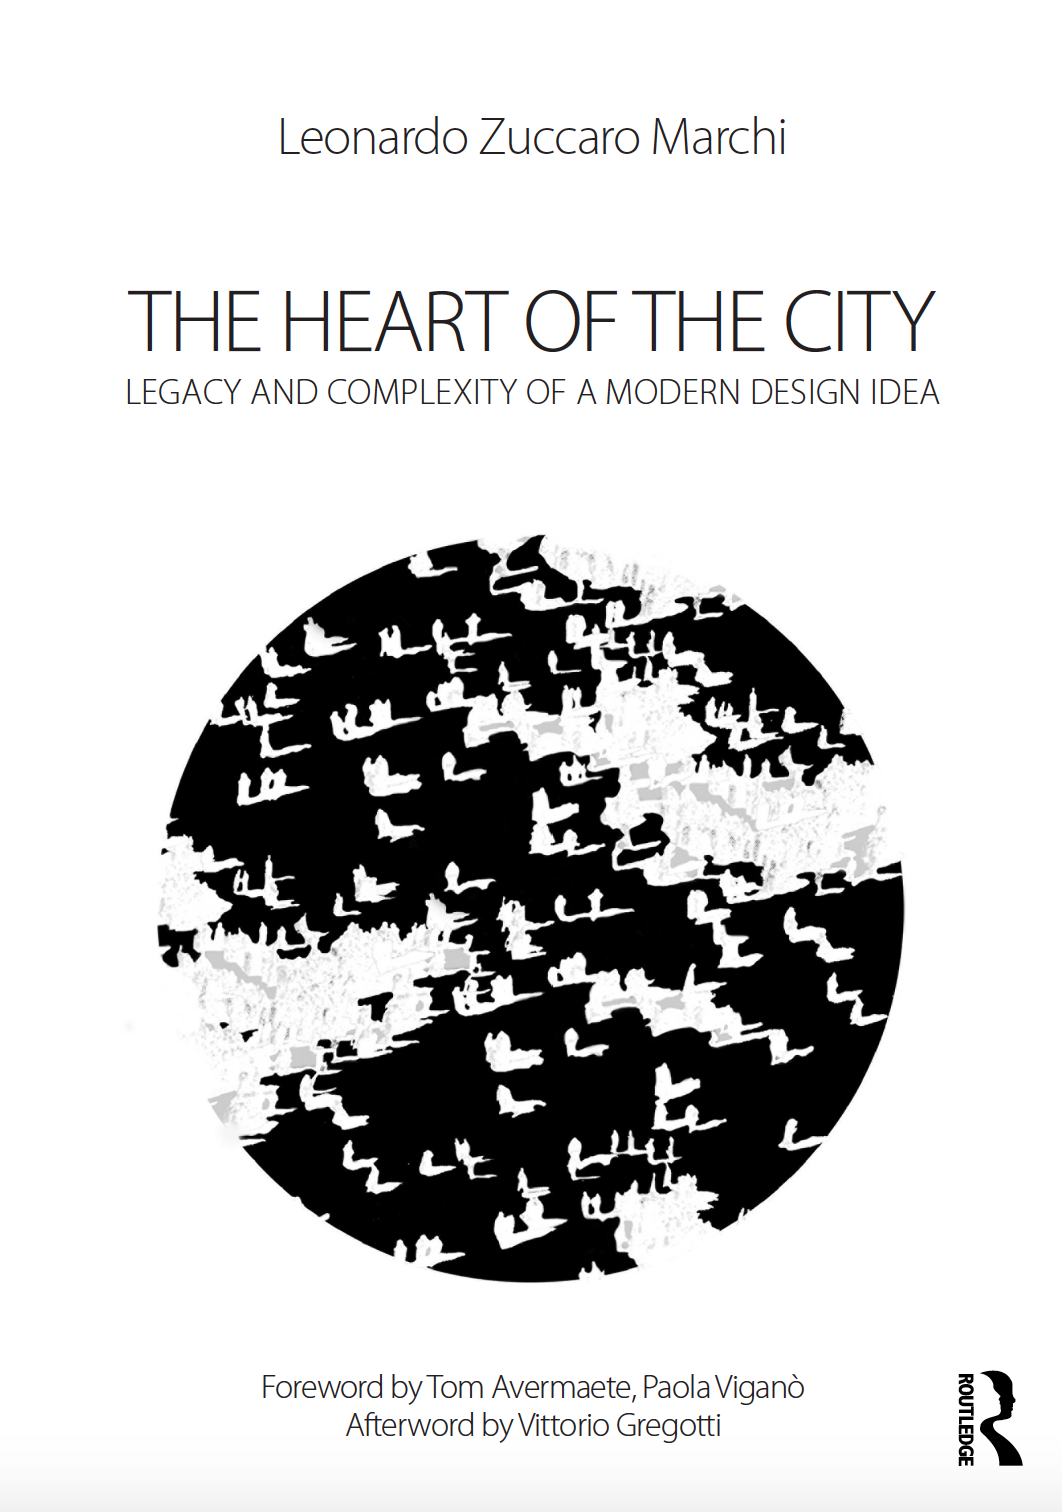 ZuccaroMarchi_The Heart of the City_Cover